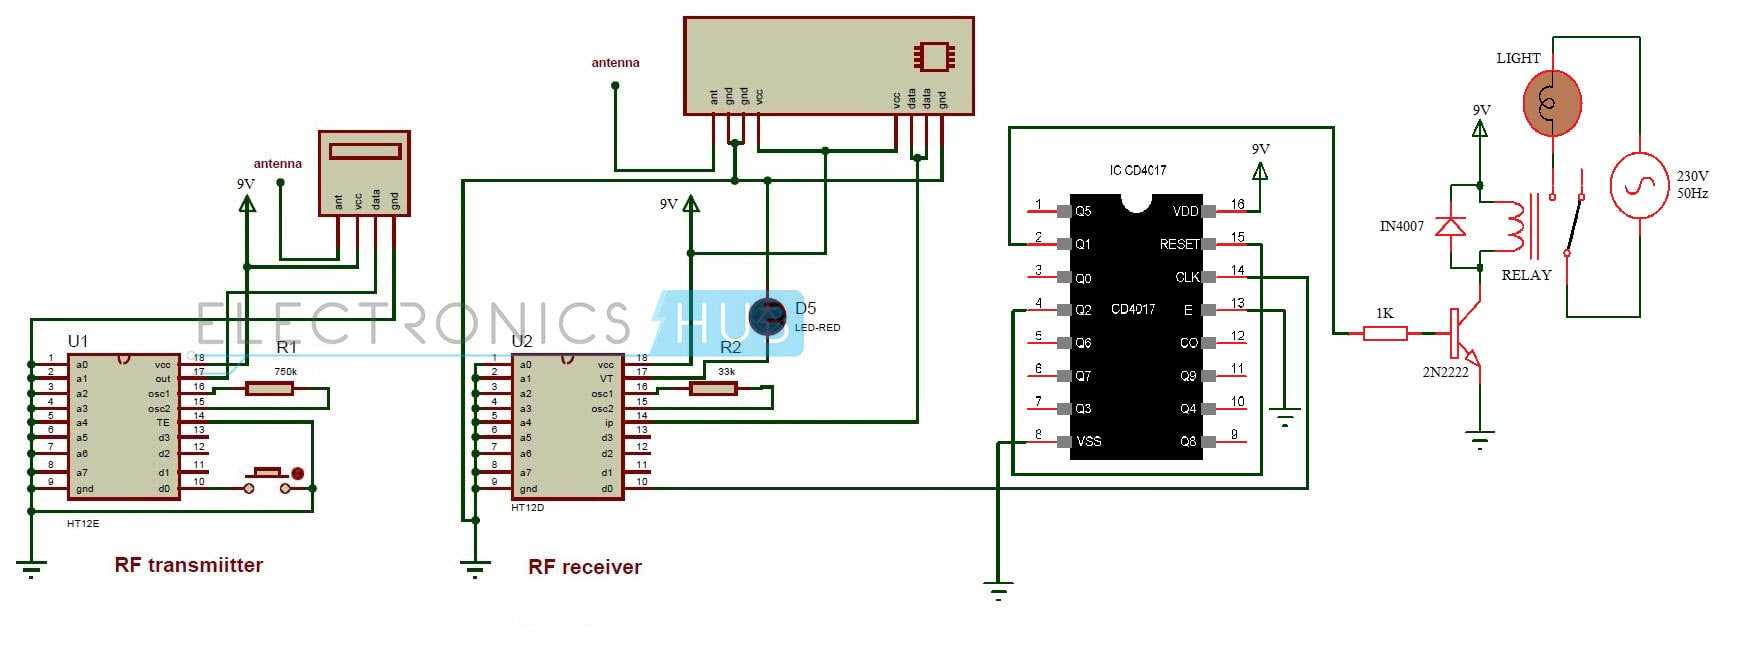 Rf Remote Control Circuit For Home Appliances Without Microcontroller The Diagram Of Using